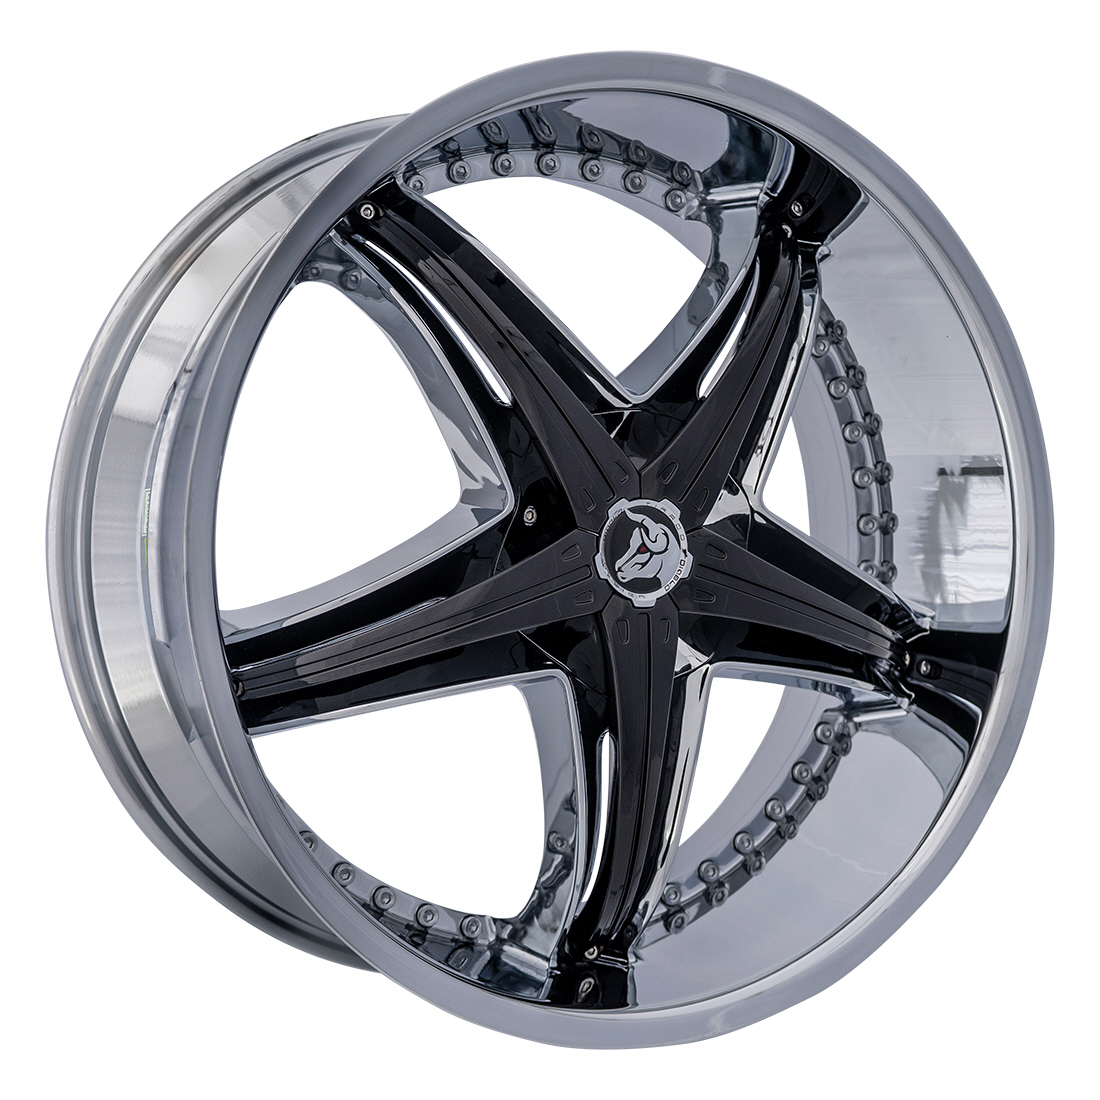 REFLECTION  WHEELS AND RIMS PACKAGES